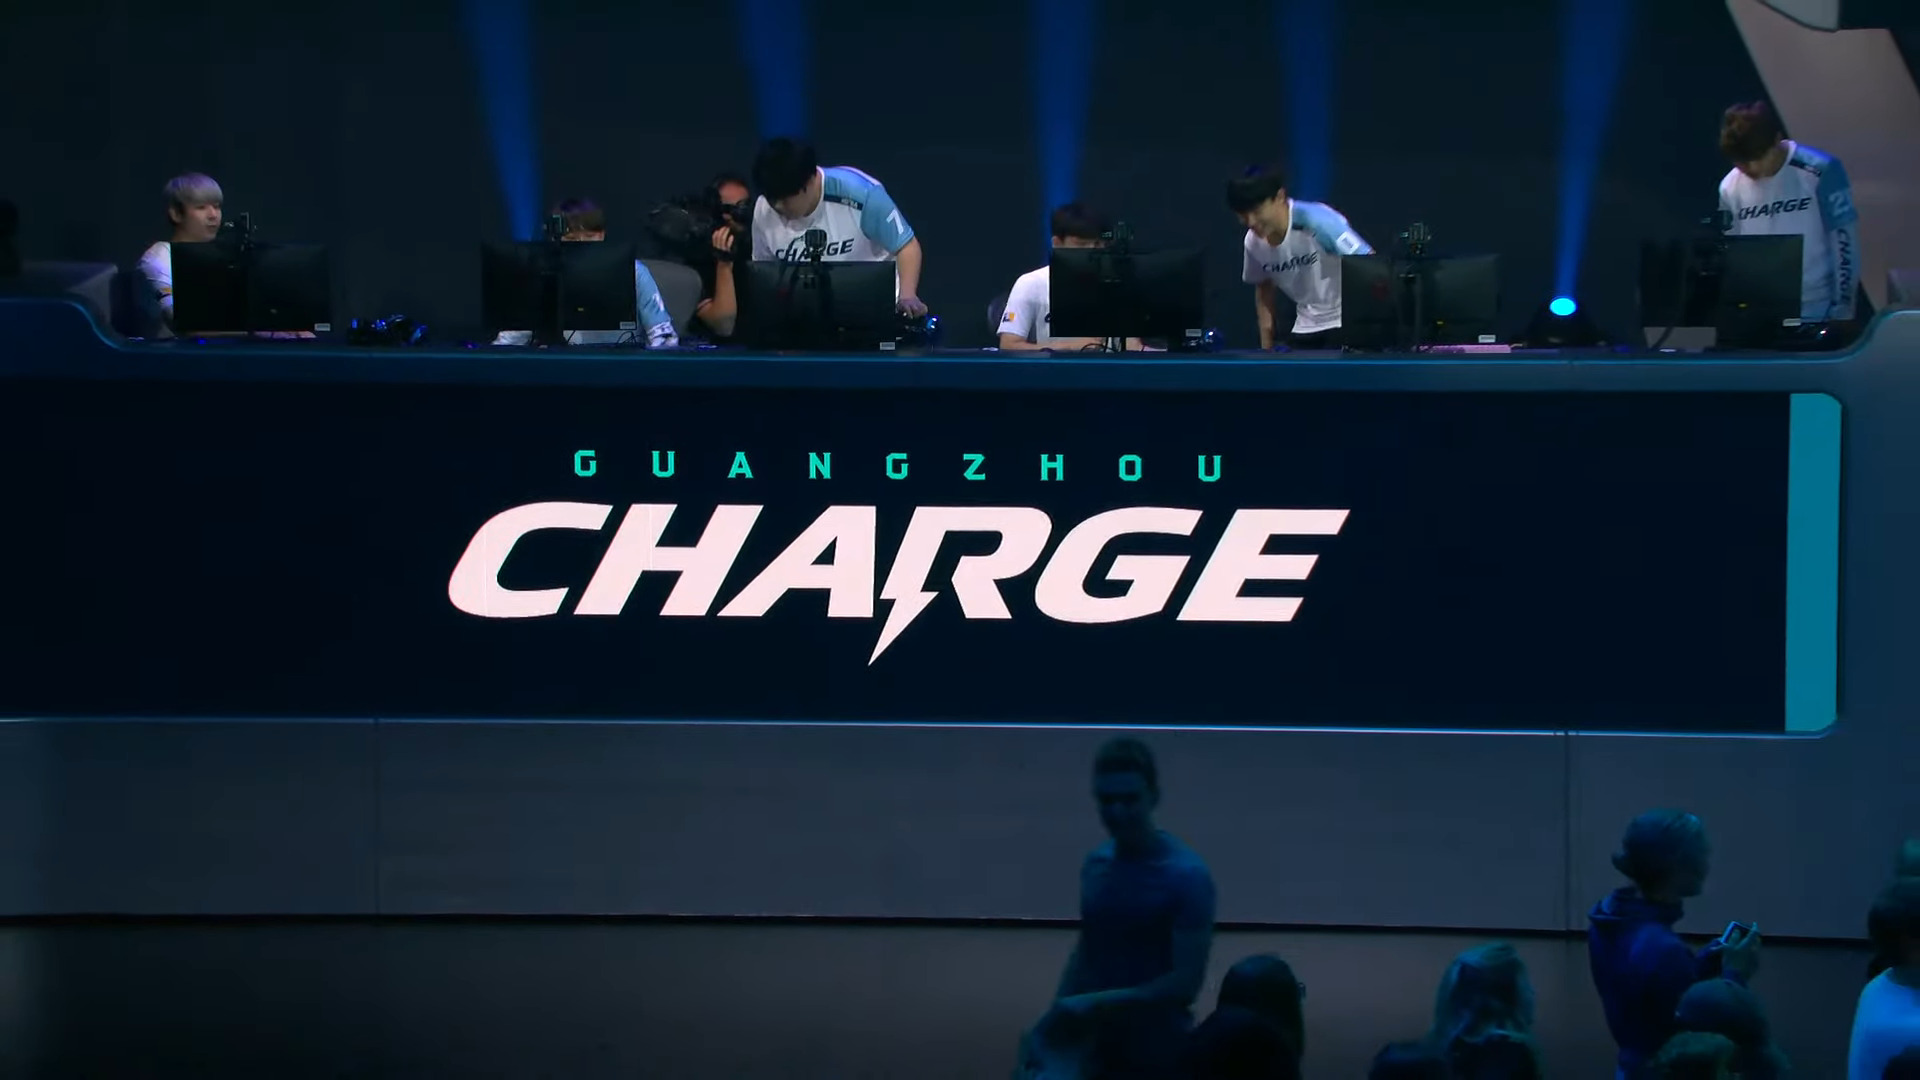 OWL – Guangzhou Charge Releases Three Founding Players, Shu Already Signed To The Los Angeles Gladiators